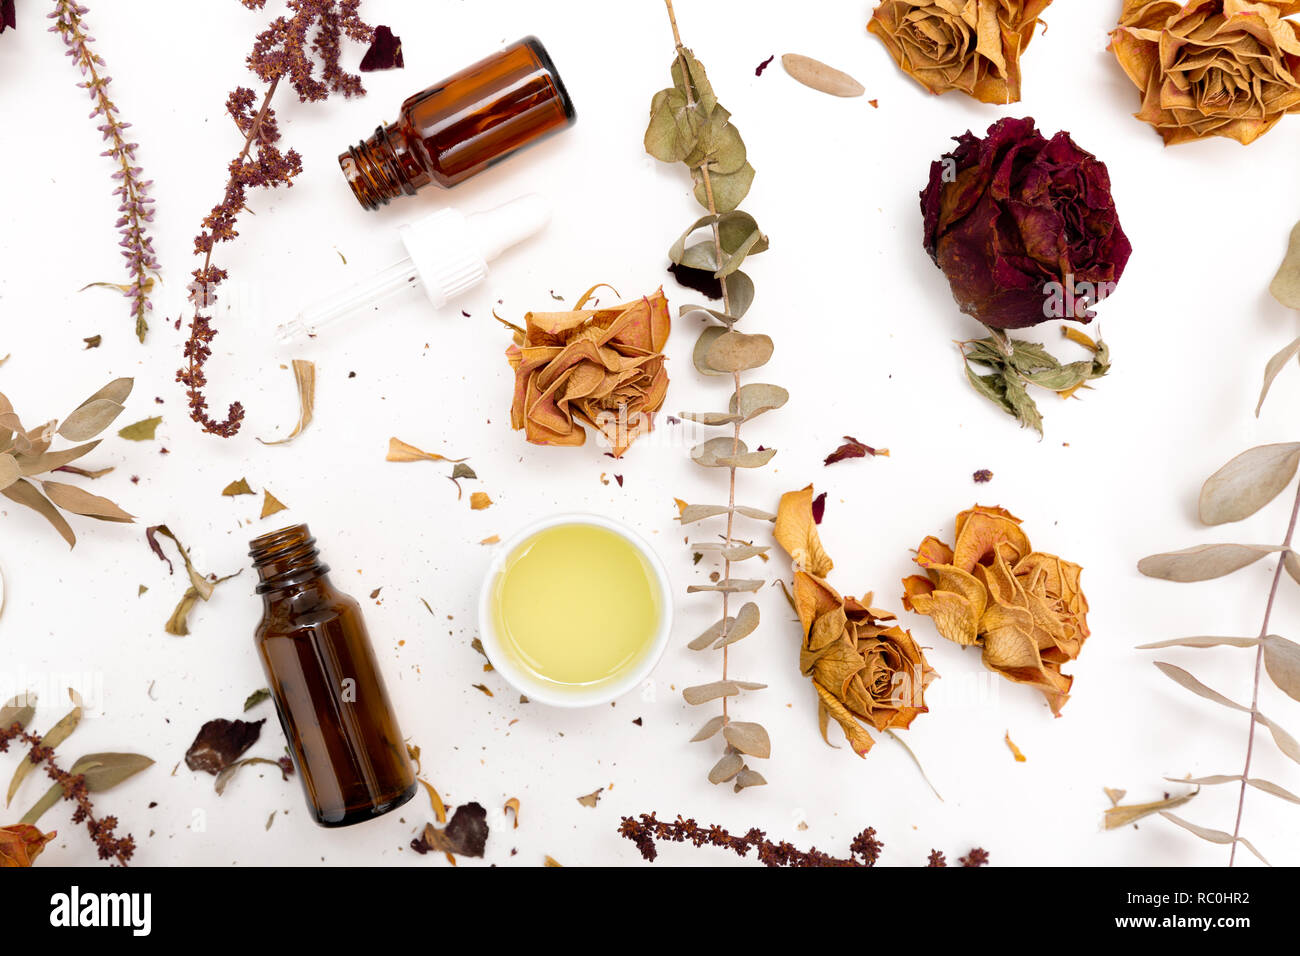 Aromatic botanical cosmetics. Dried herbs flowers mixture, facial mud clay mask, oils, applying brush. Holistic herbal skincare beauty hack Stock Photo